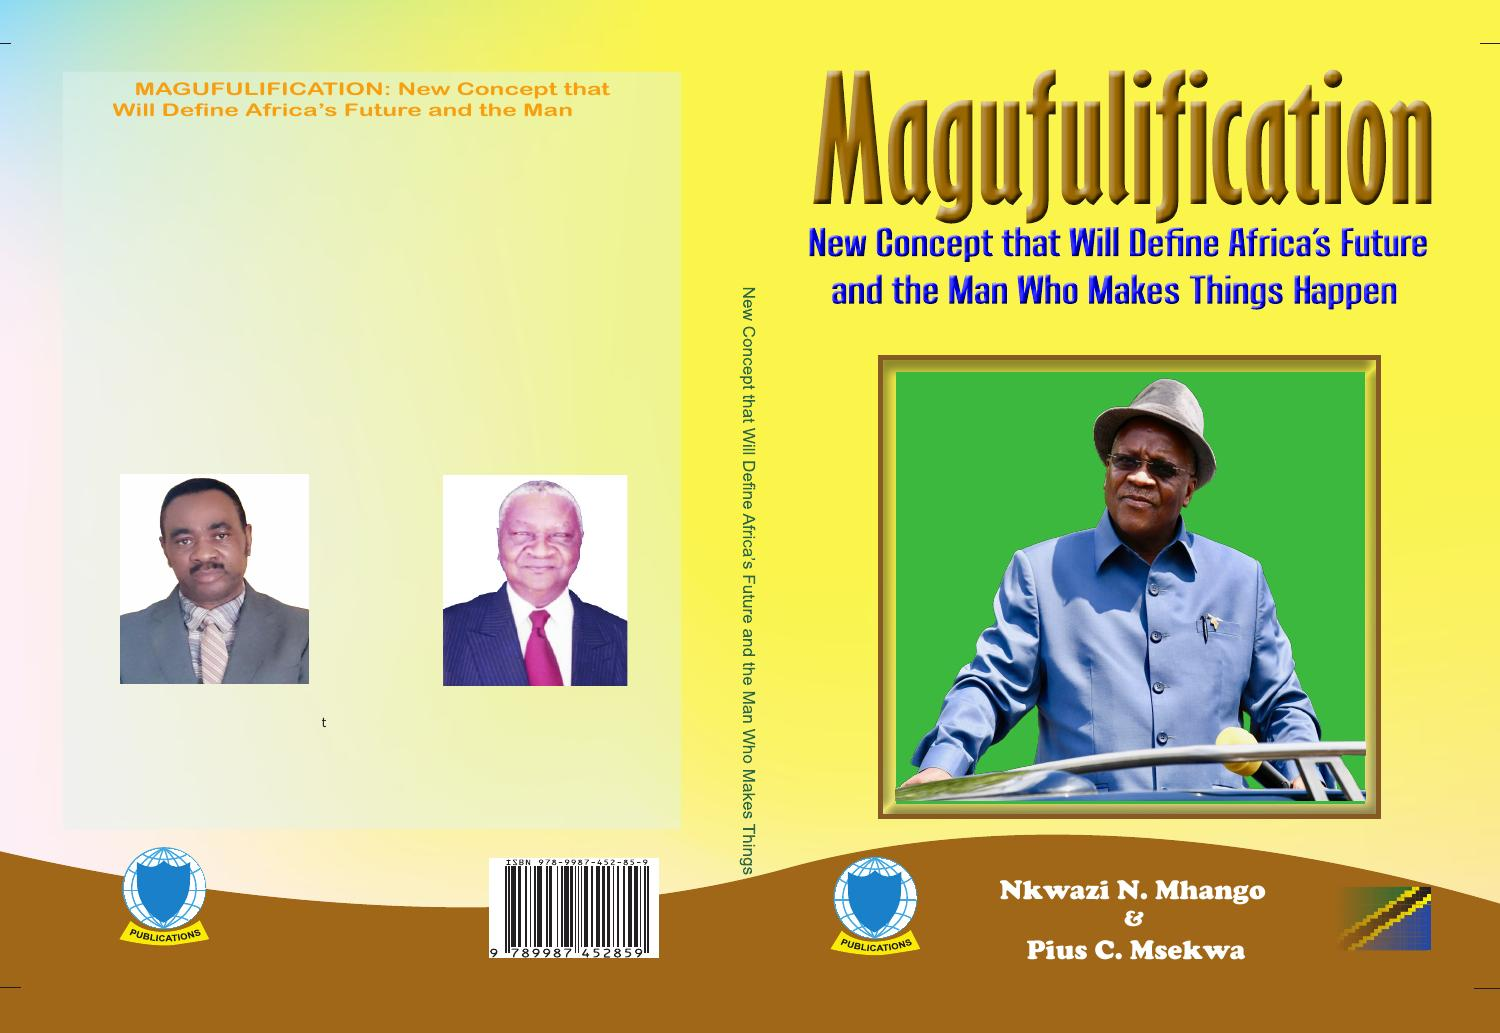 Magufulification: Concept That Will Define Africa's Future and the Man Who Makes Things Happen